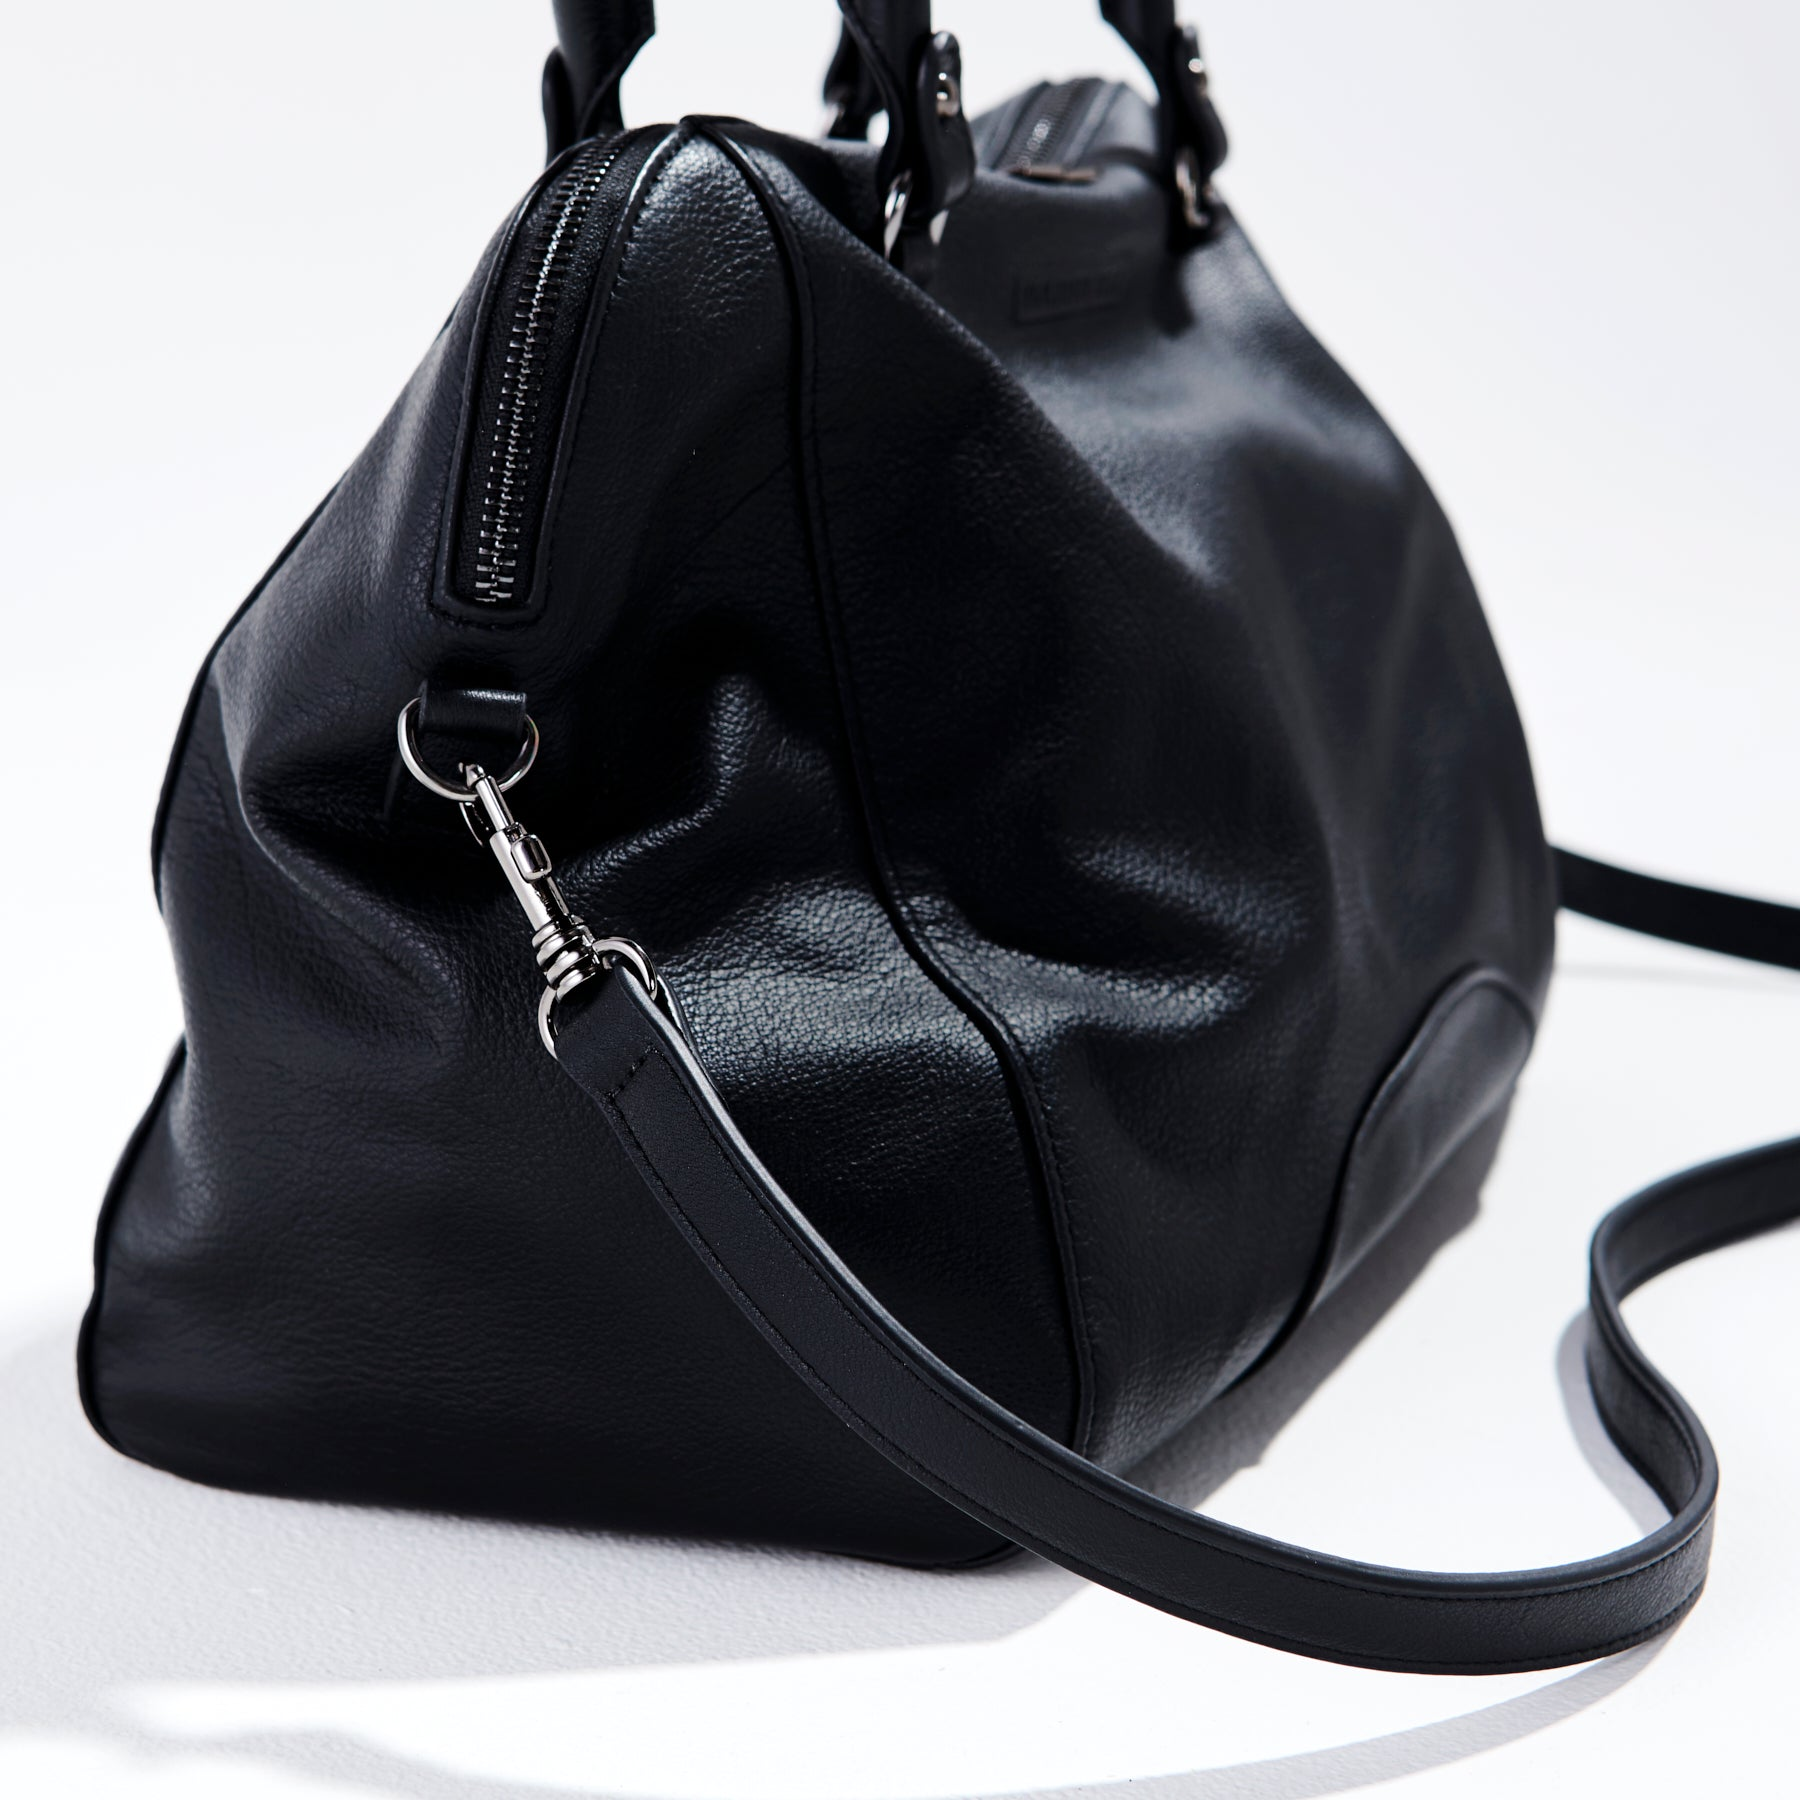 detail side view of black leather handbag